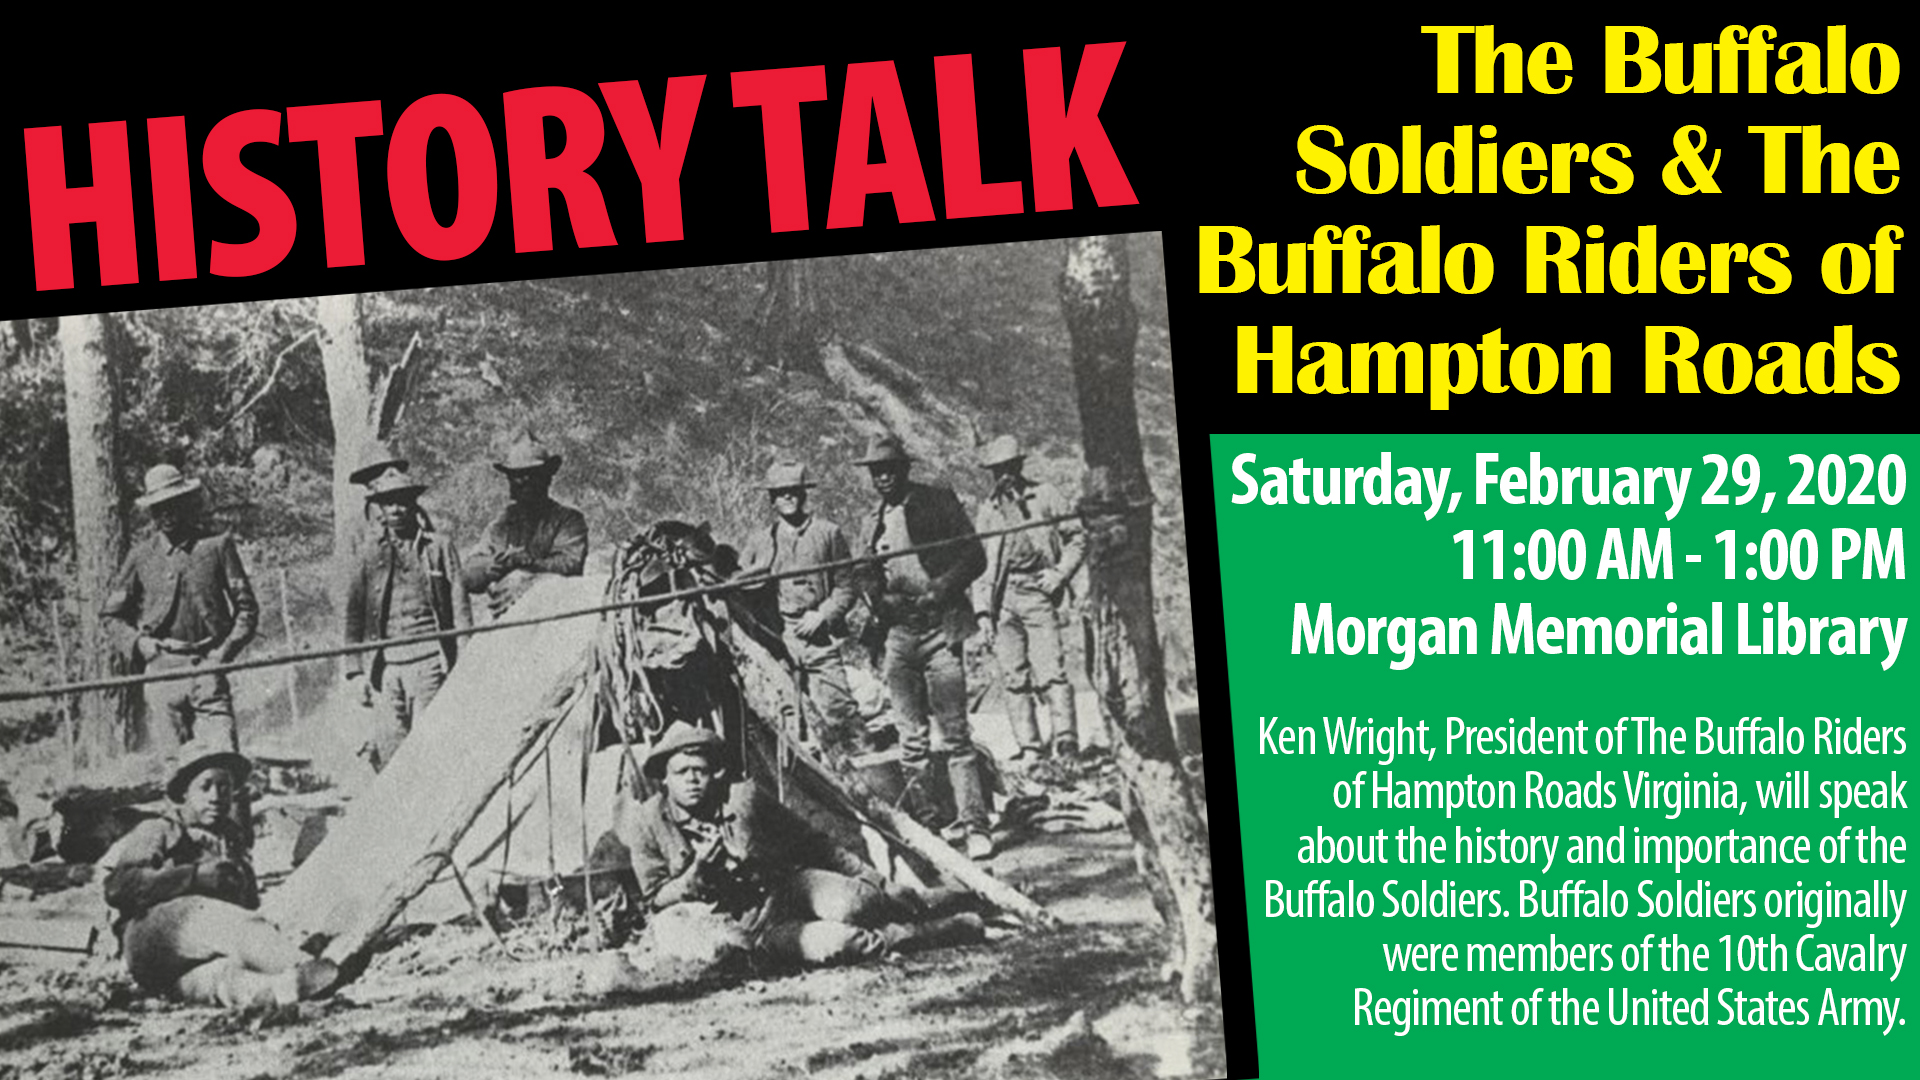 History Talk: The Buffalo Soldiers & The Buffalo Riders of the Hampton Roads